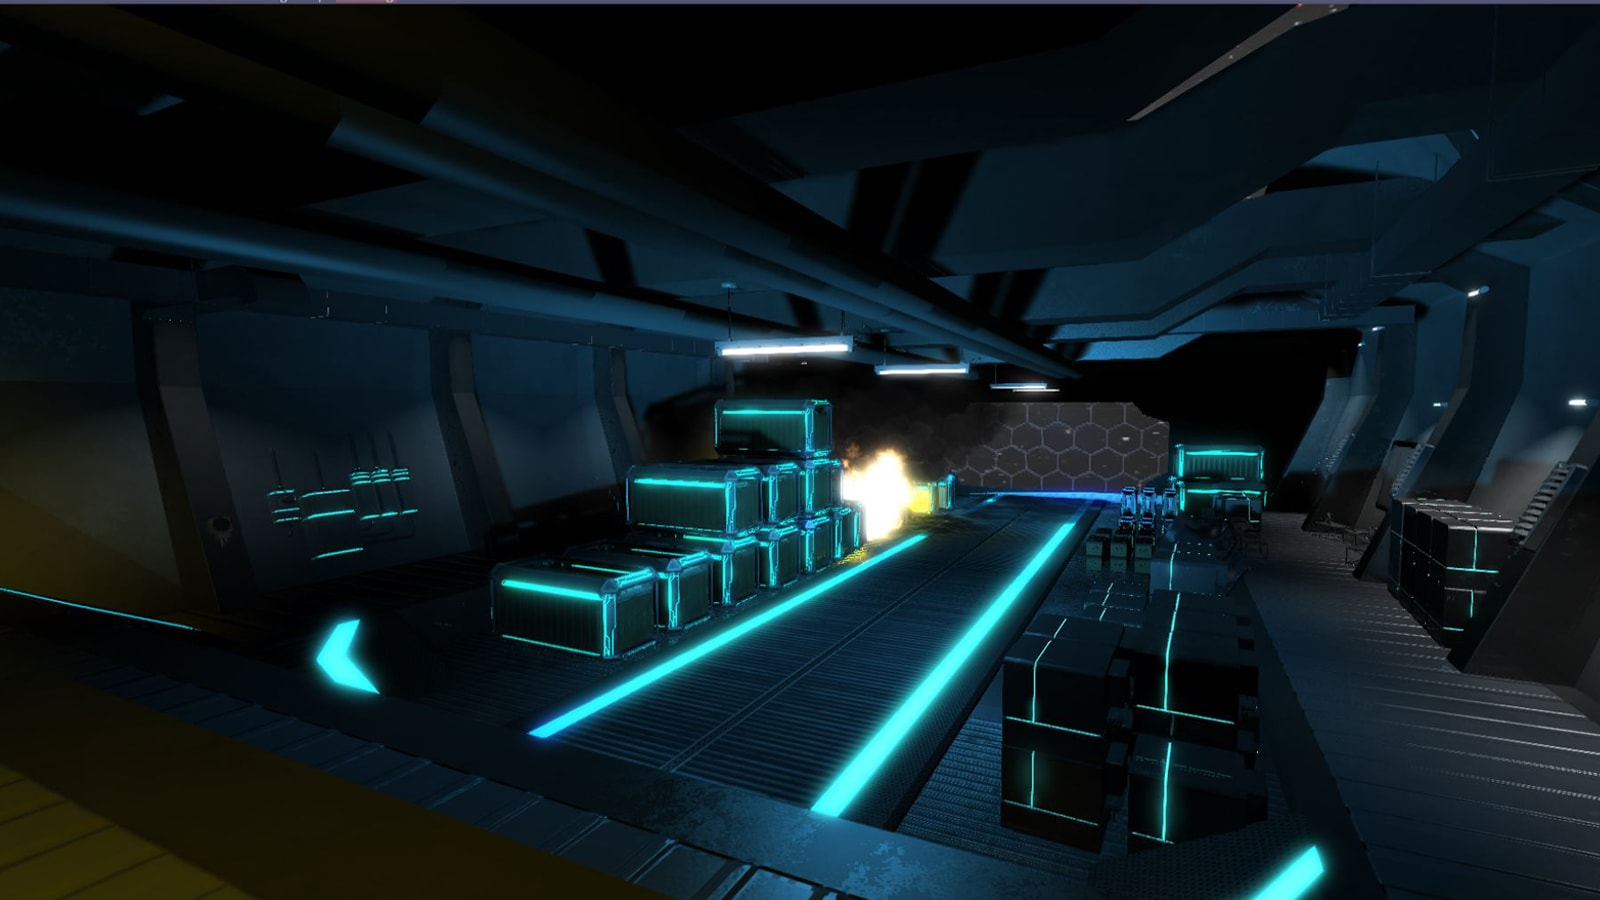 An explosion behind a stack of glowing crates in a futuristic storage room.